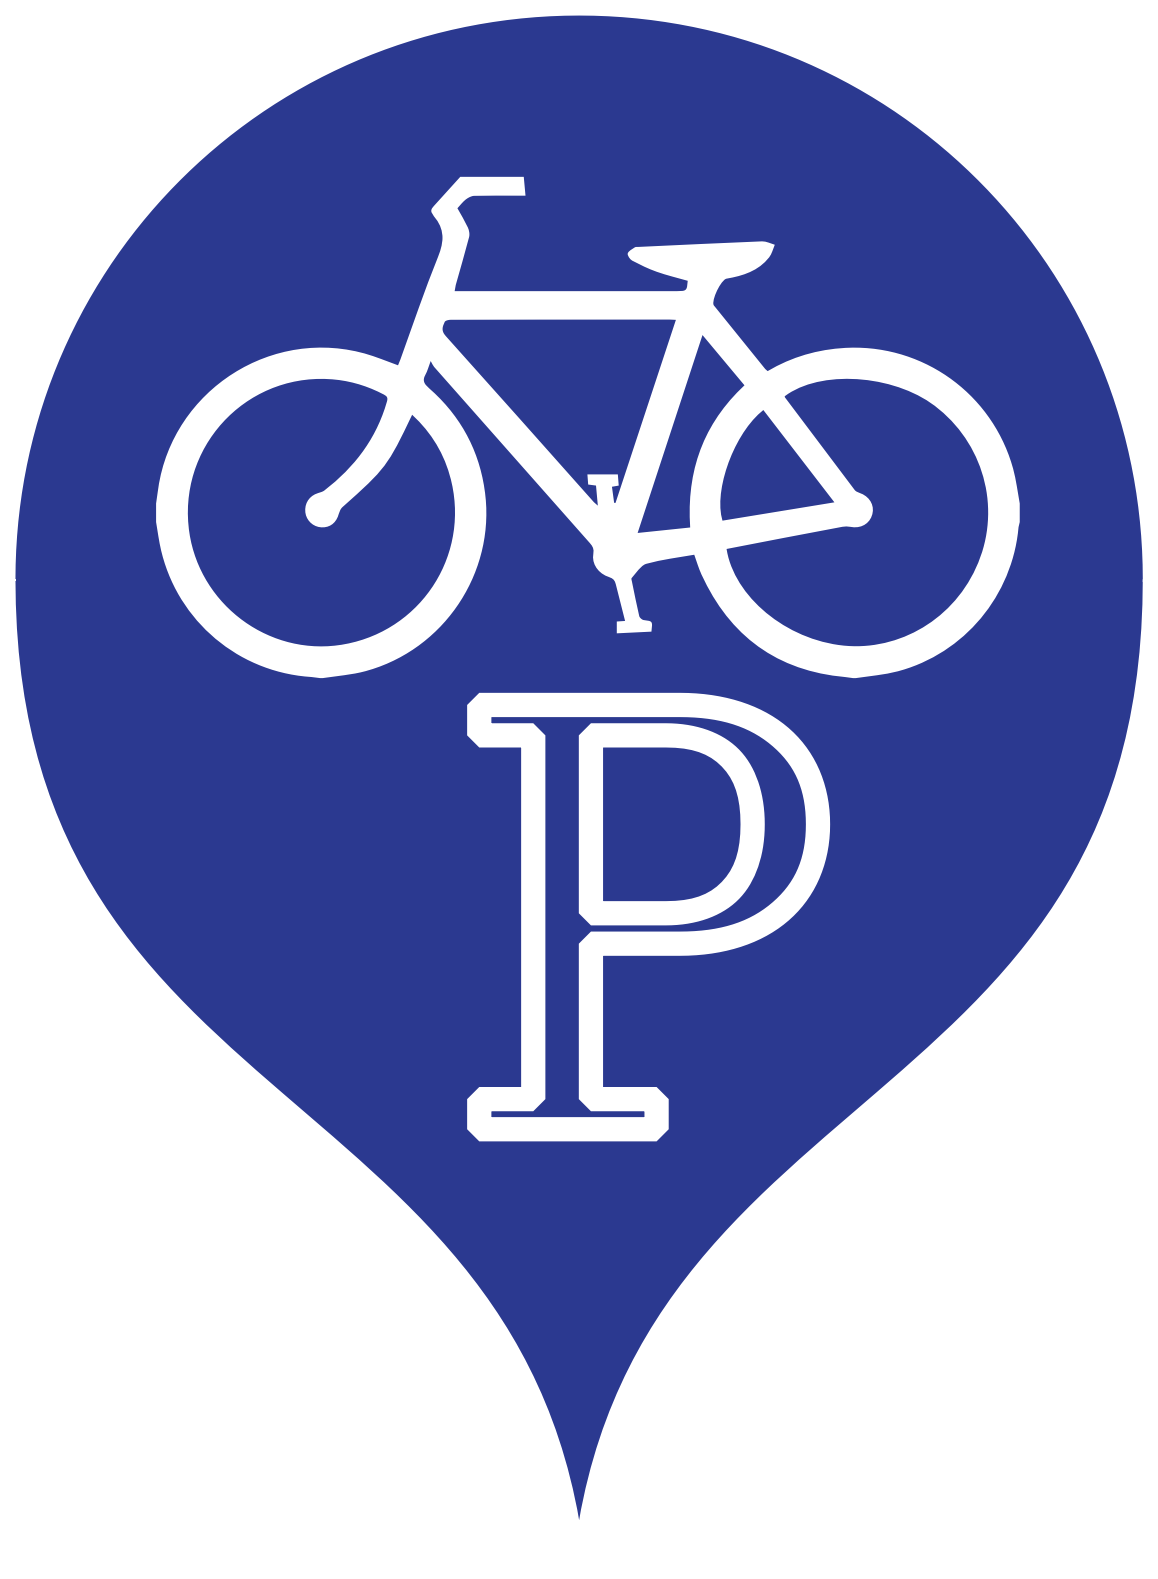 Bike sign big image. Parking lot clipart icon